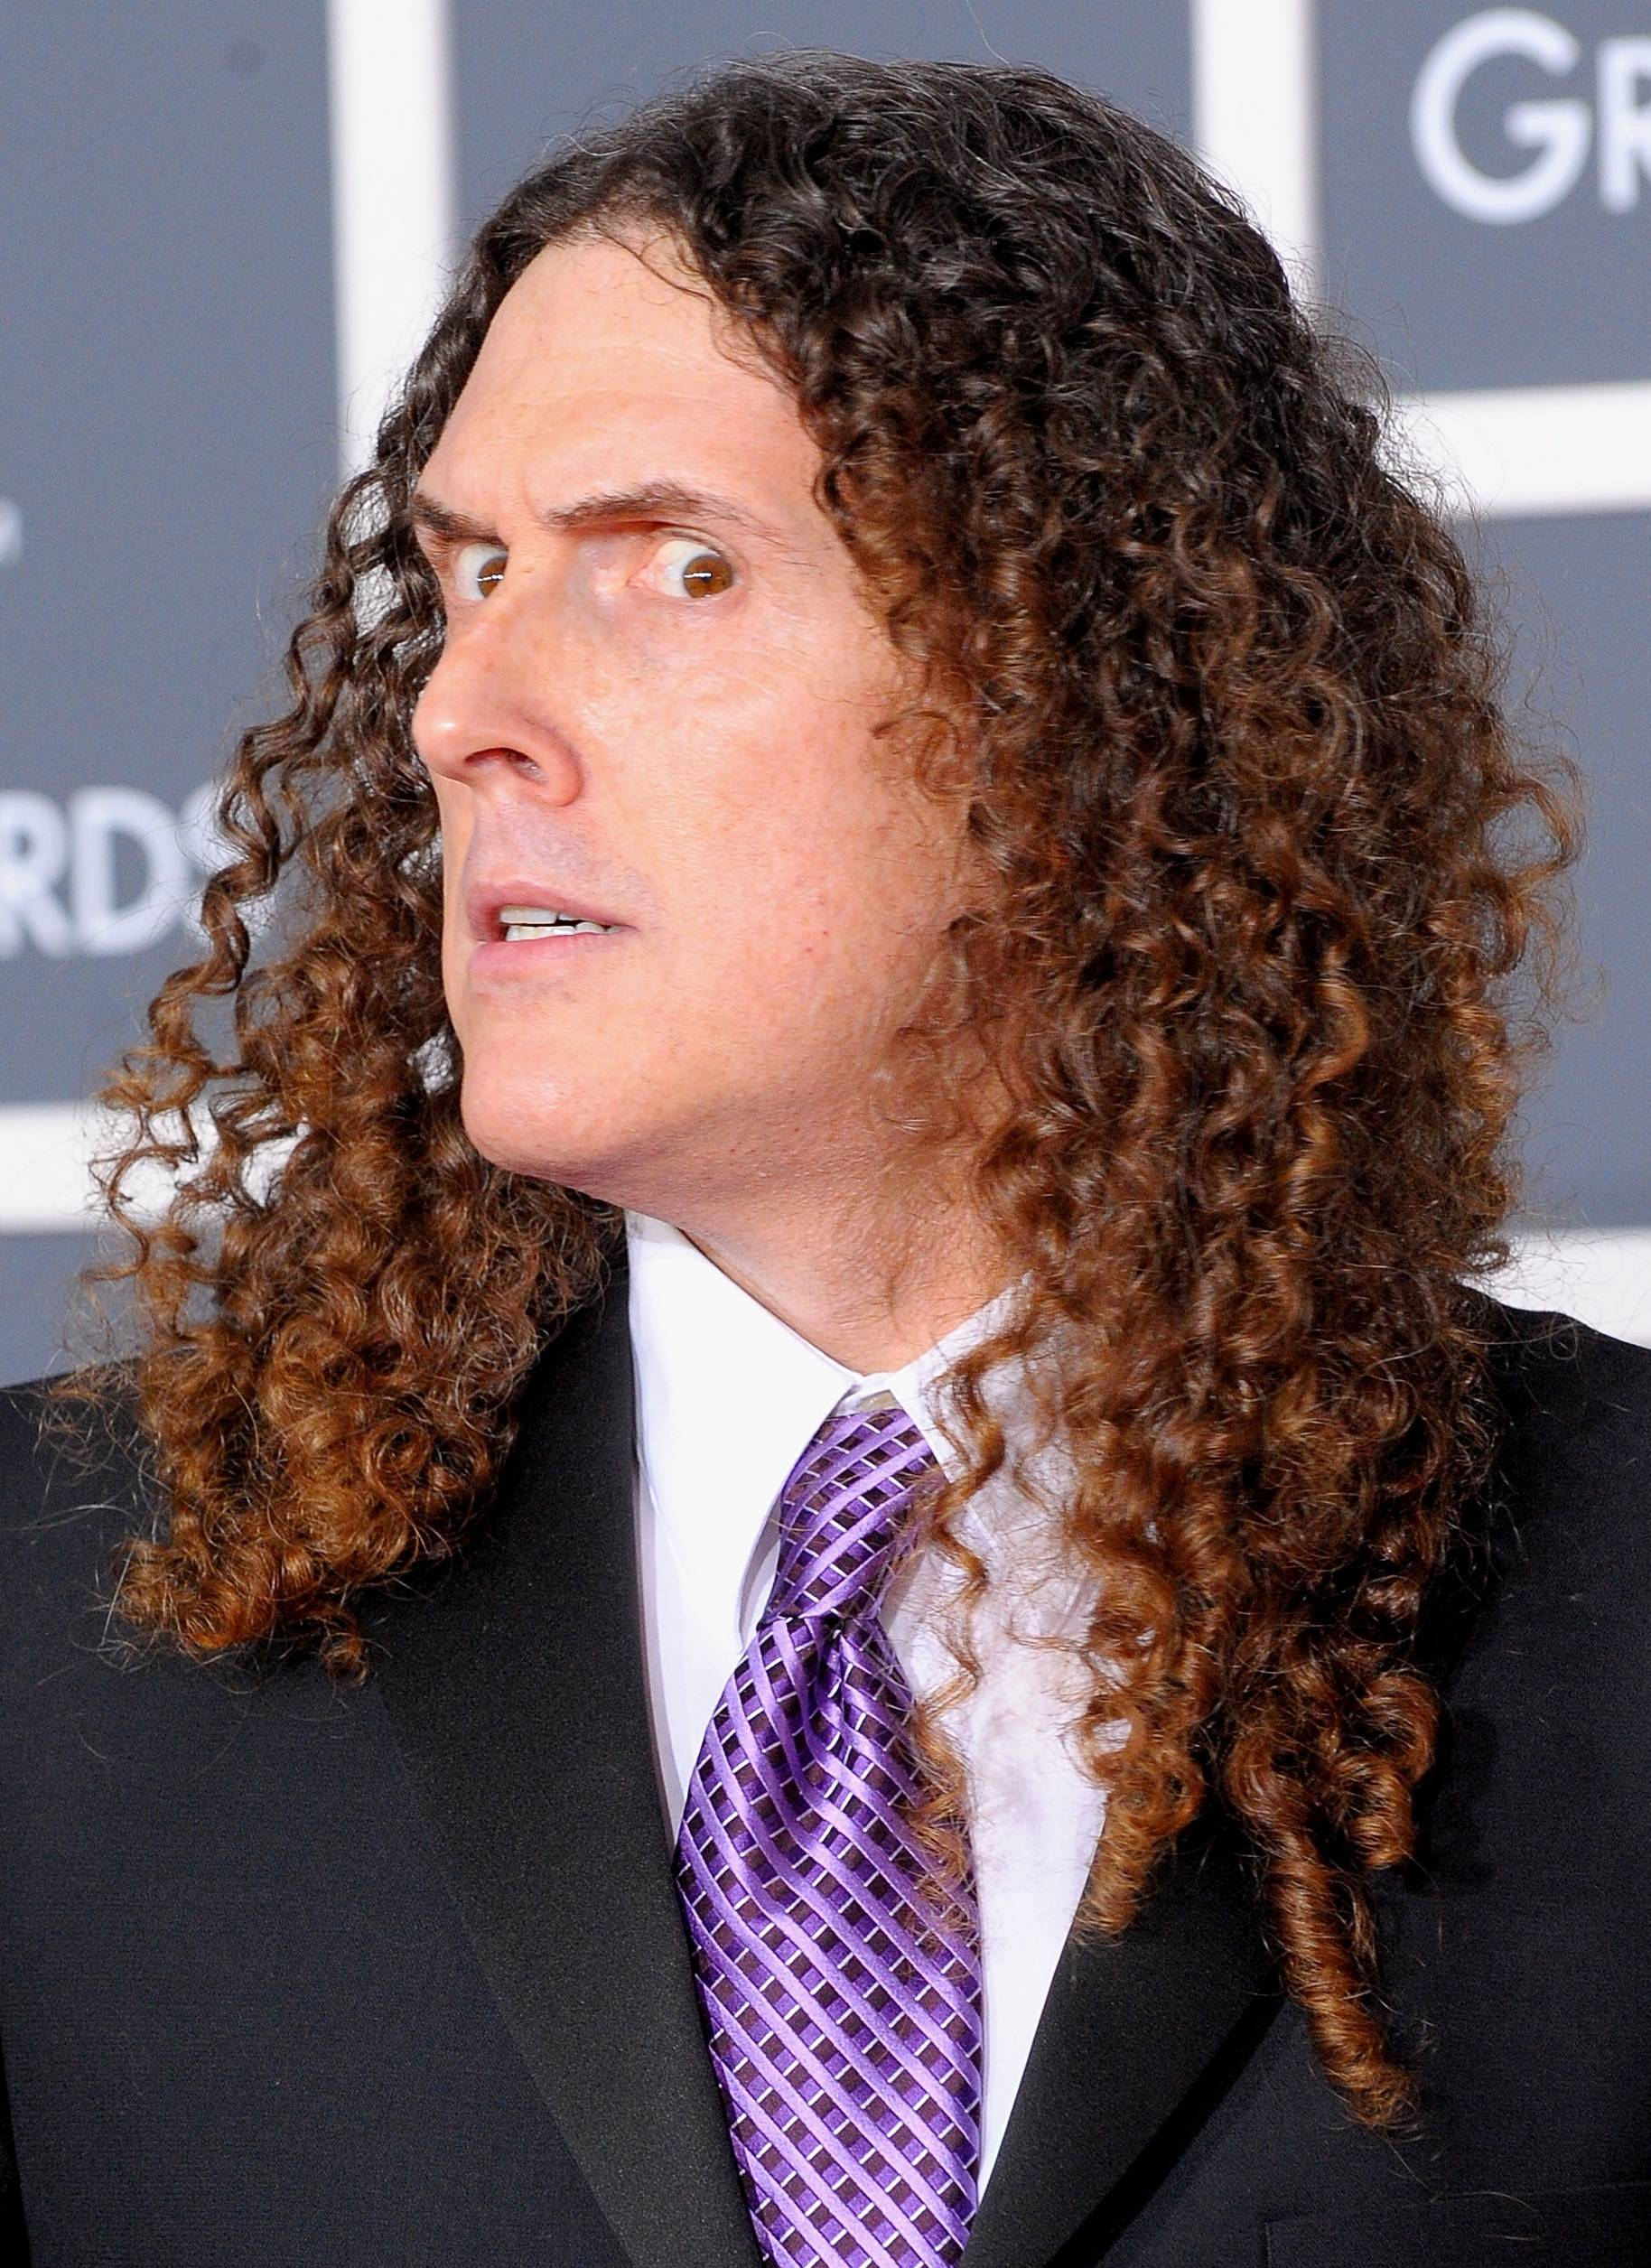 Weird Al Yankovic Backgrounds, Compatible - PC, Mobile, Gadgets| 1828x2511 px